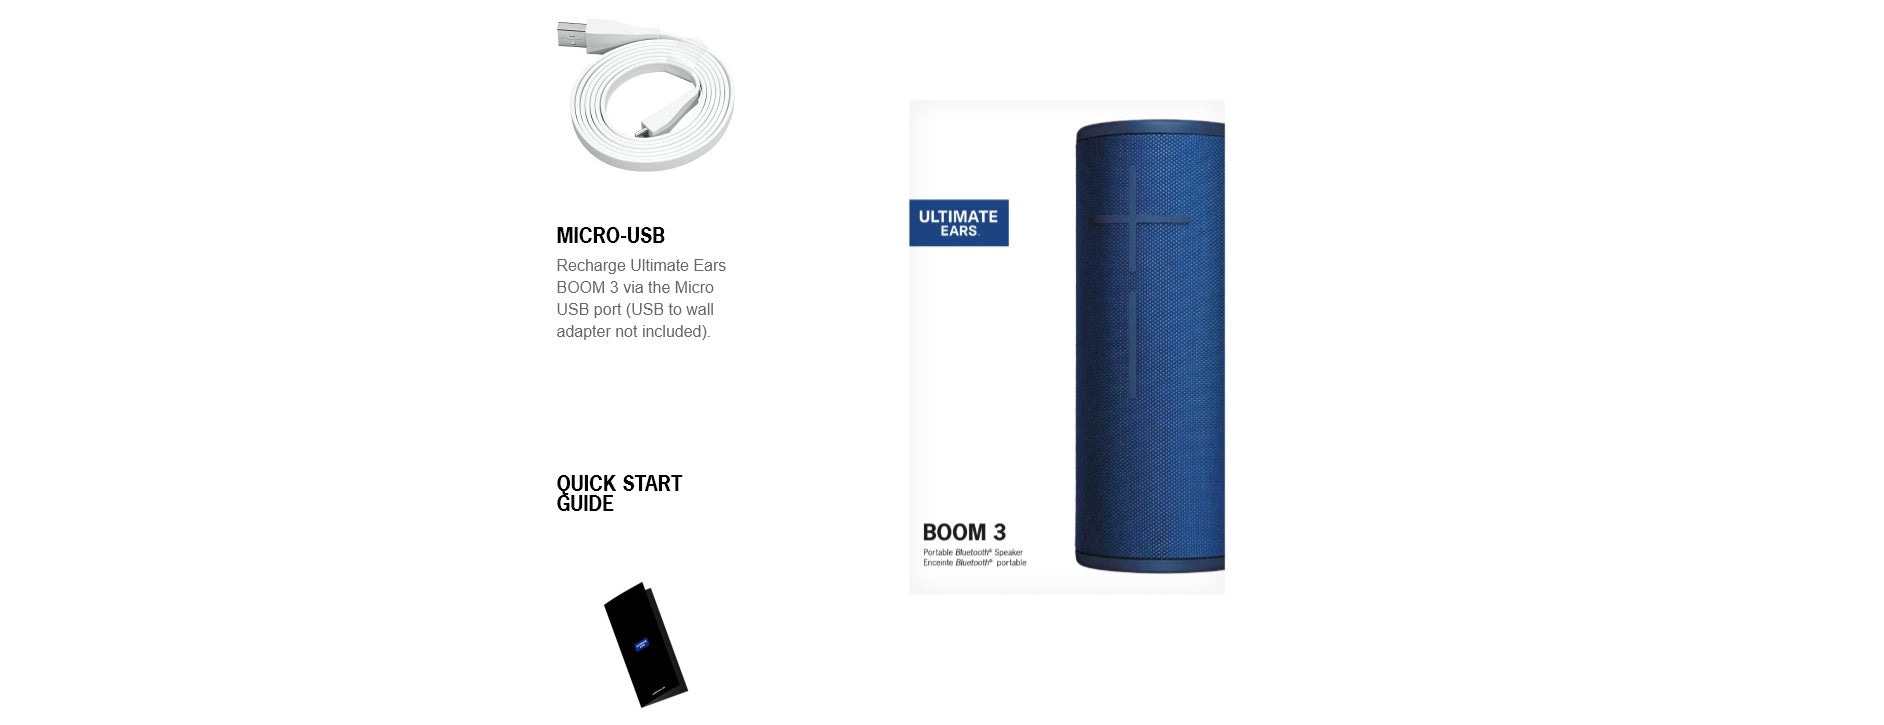 In the box, you get the Ultimate Ears Boom 3 Speaker, USB Charging Cable & Quick Start Guide.